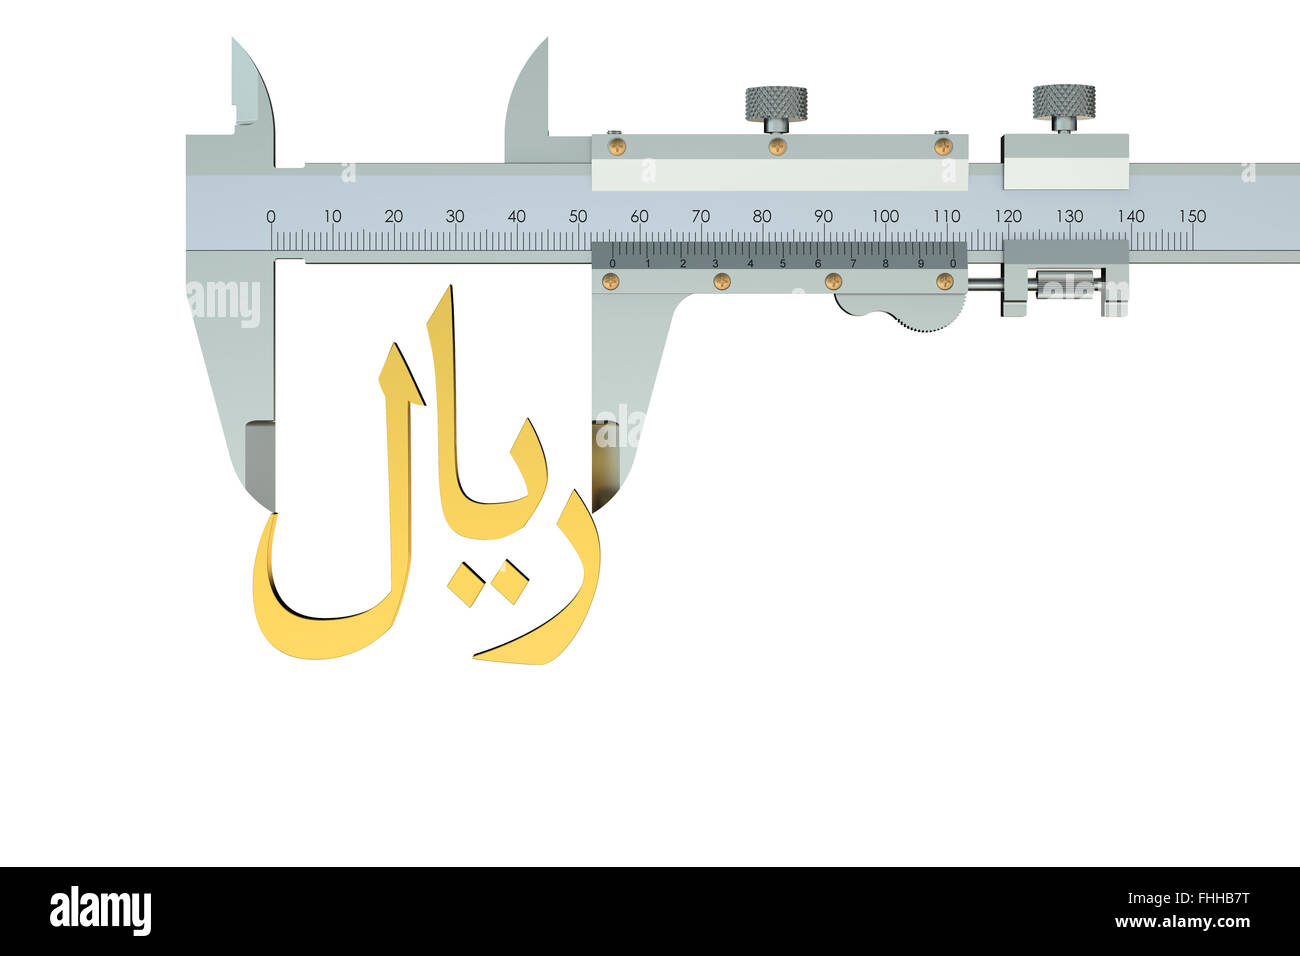 Vernier Scale Stock Photos Images Page 3 Alamy Caliper Diagram Riyal Symbol With Isolated On White Background Image